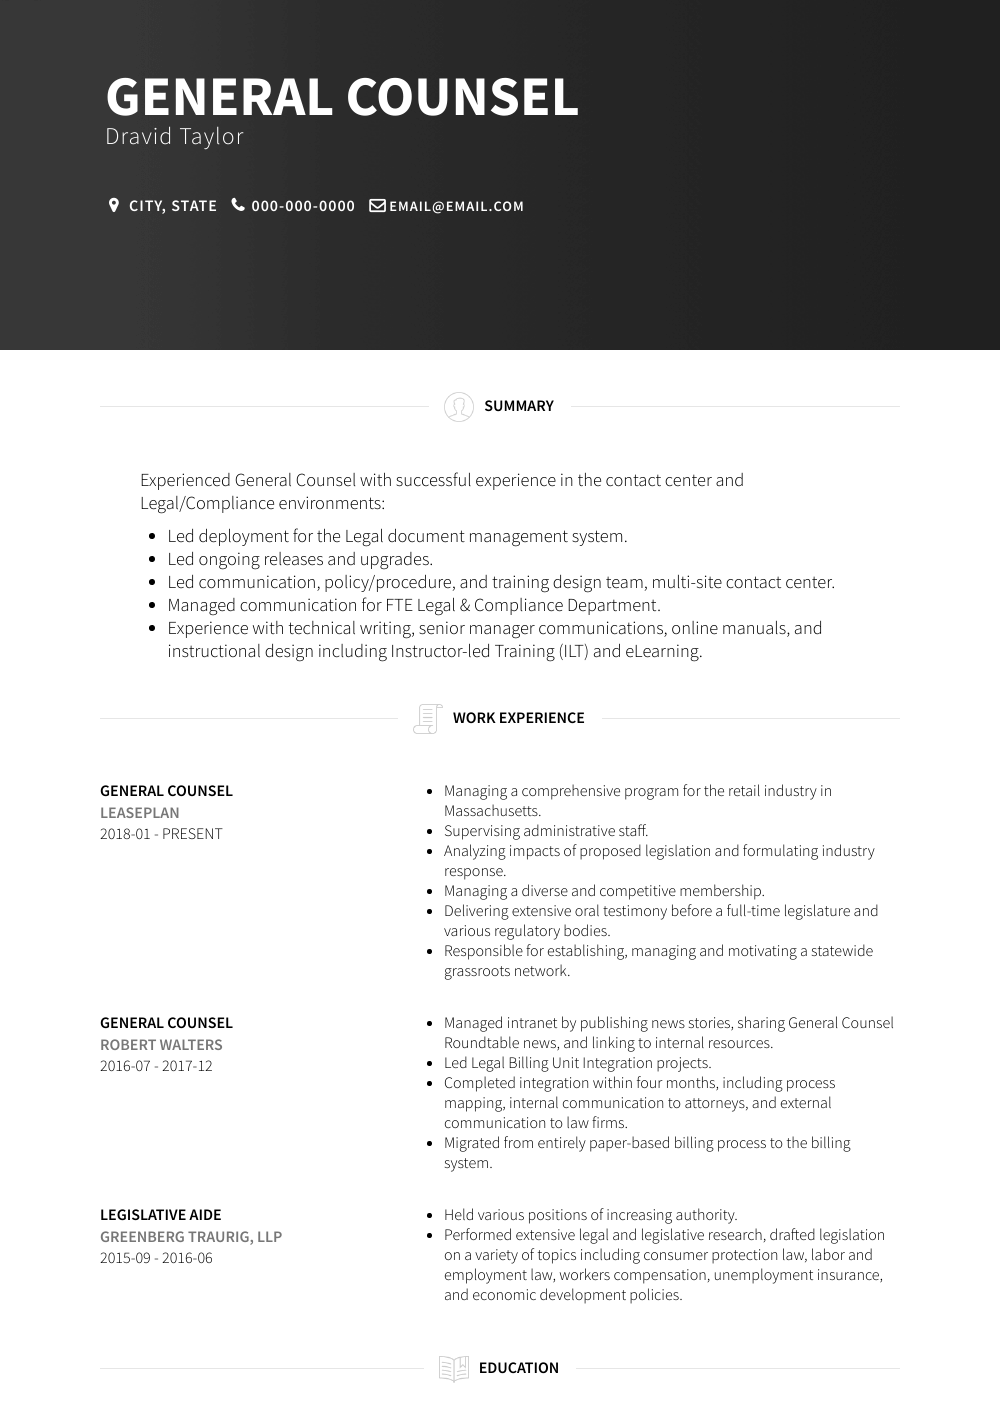 General Counsel Resume Sample and Template